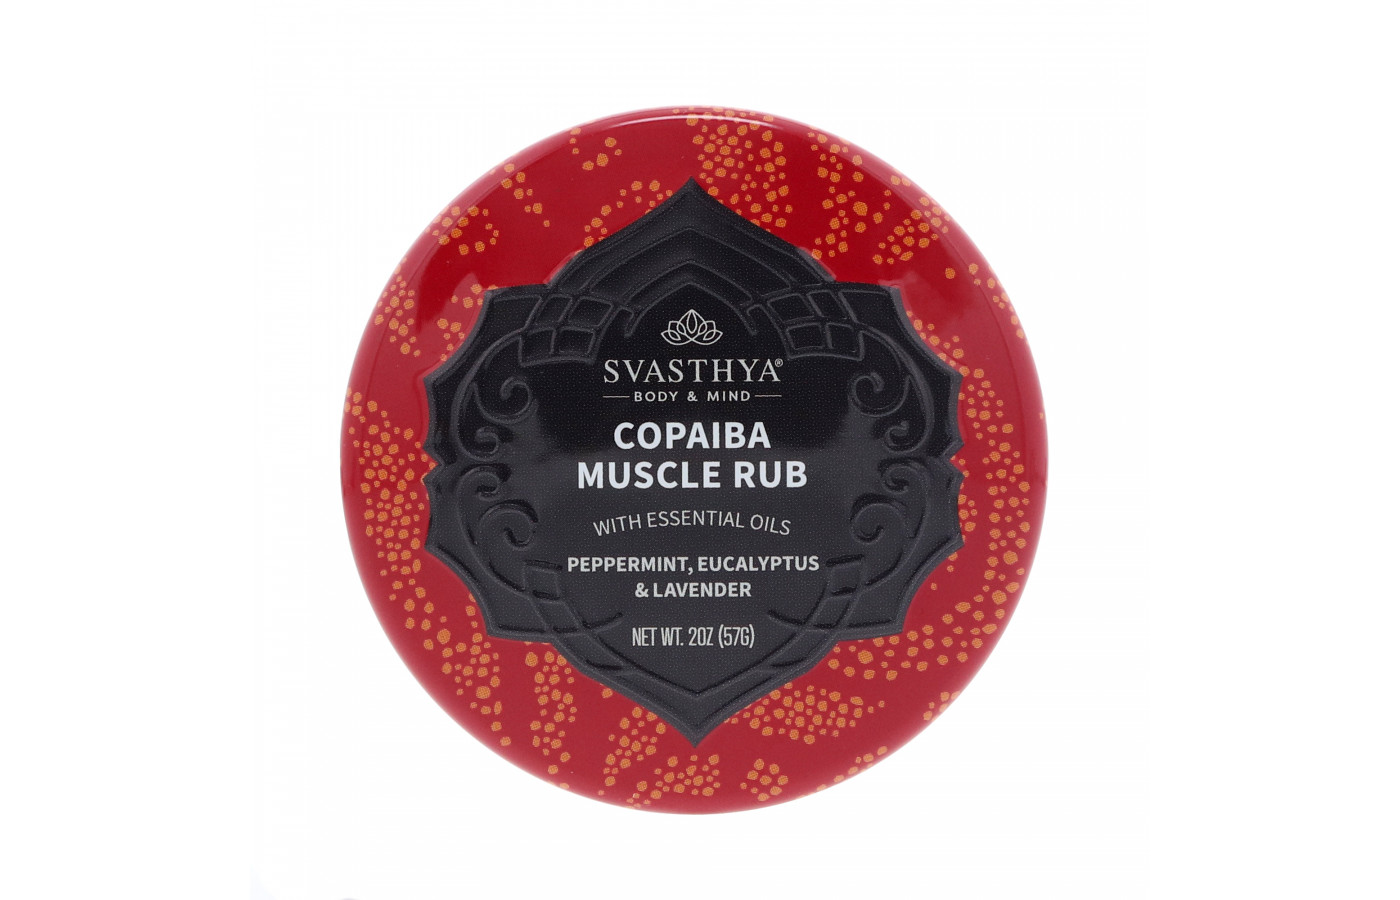 Svasthya Copaiba Muscle Rub closed